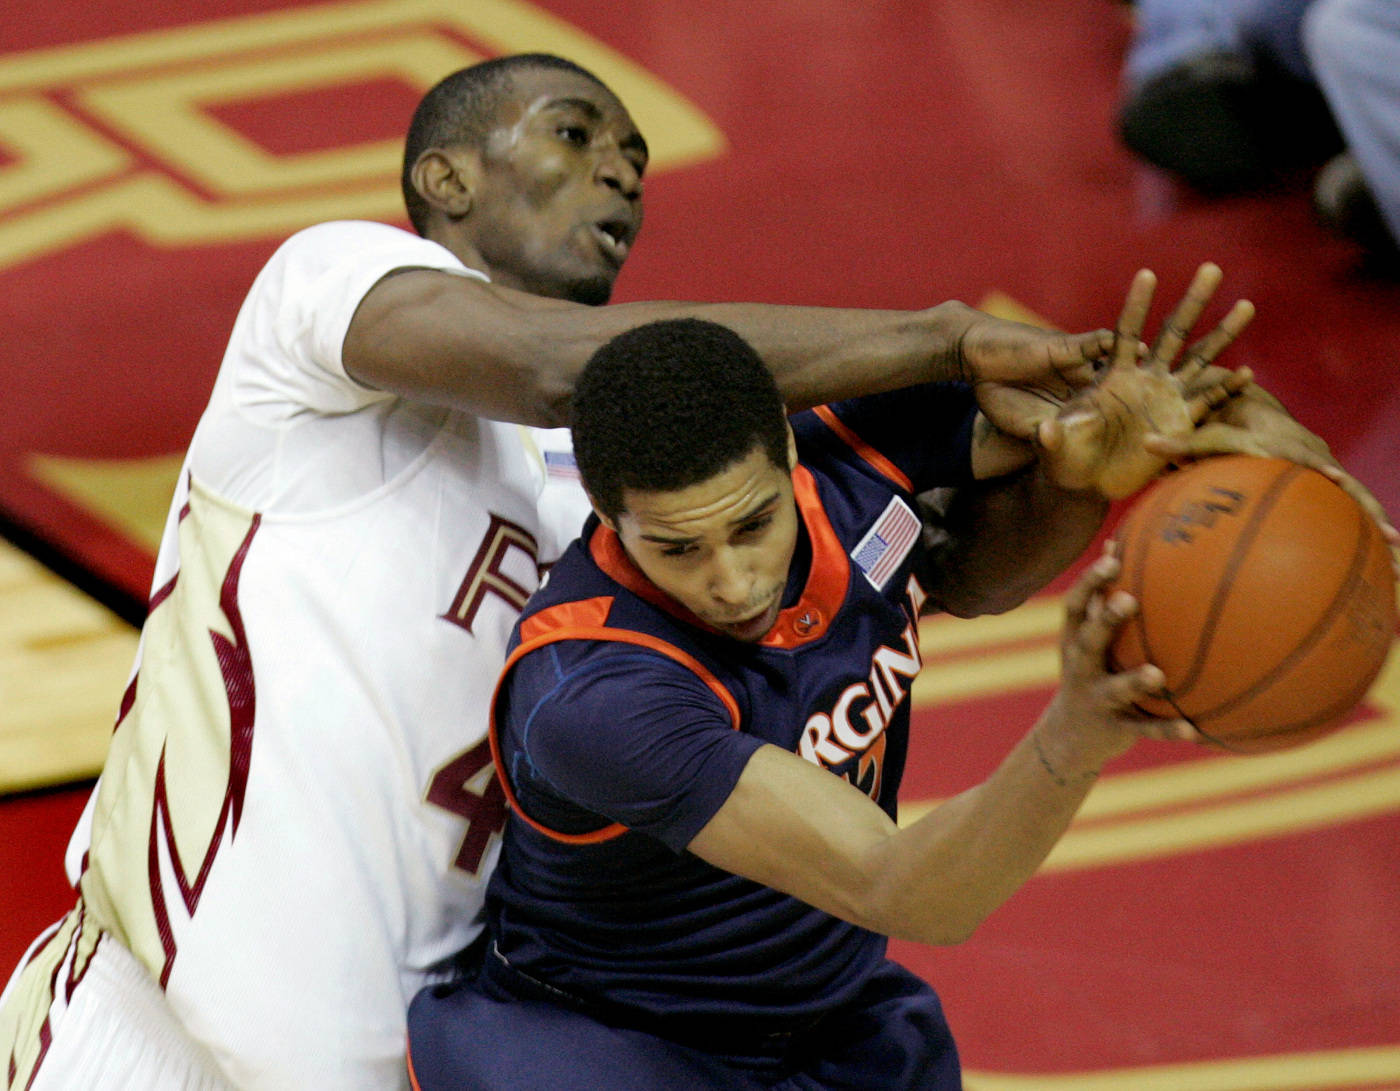 Virginia's Sylven Landesberg, right, is fouled by Florida State's Uche Echefu as he battles for a first-half rebound. (AP Photo/Phil Coale)